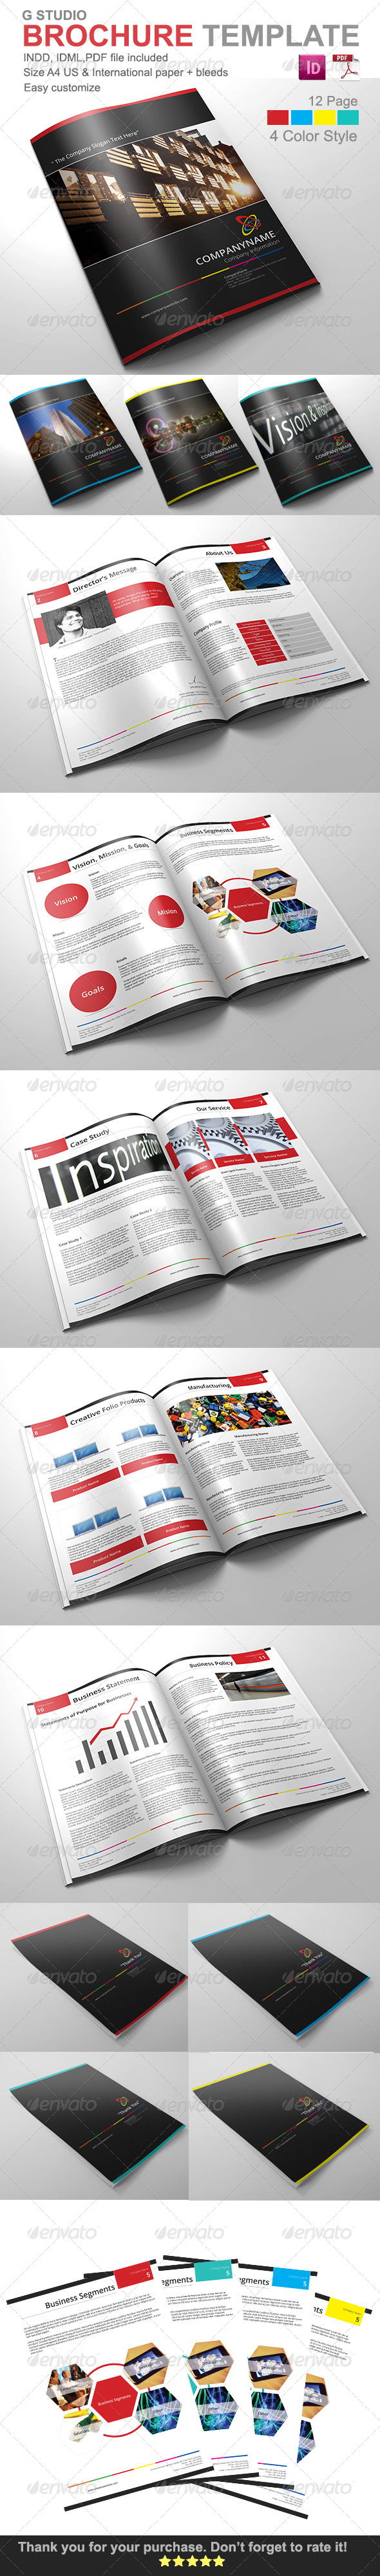 Gstudio Brochure Template - Corporate Brochures